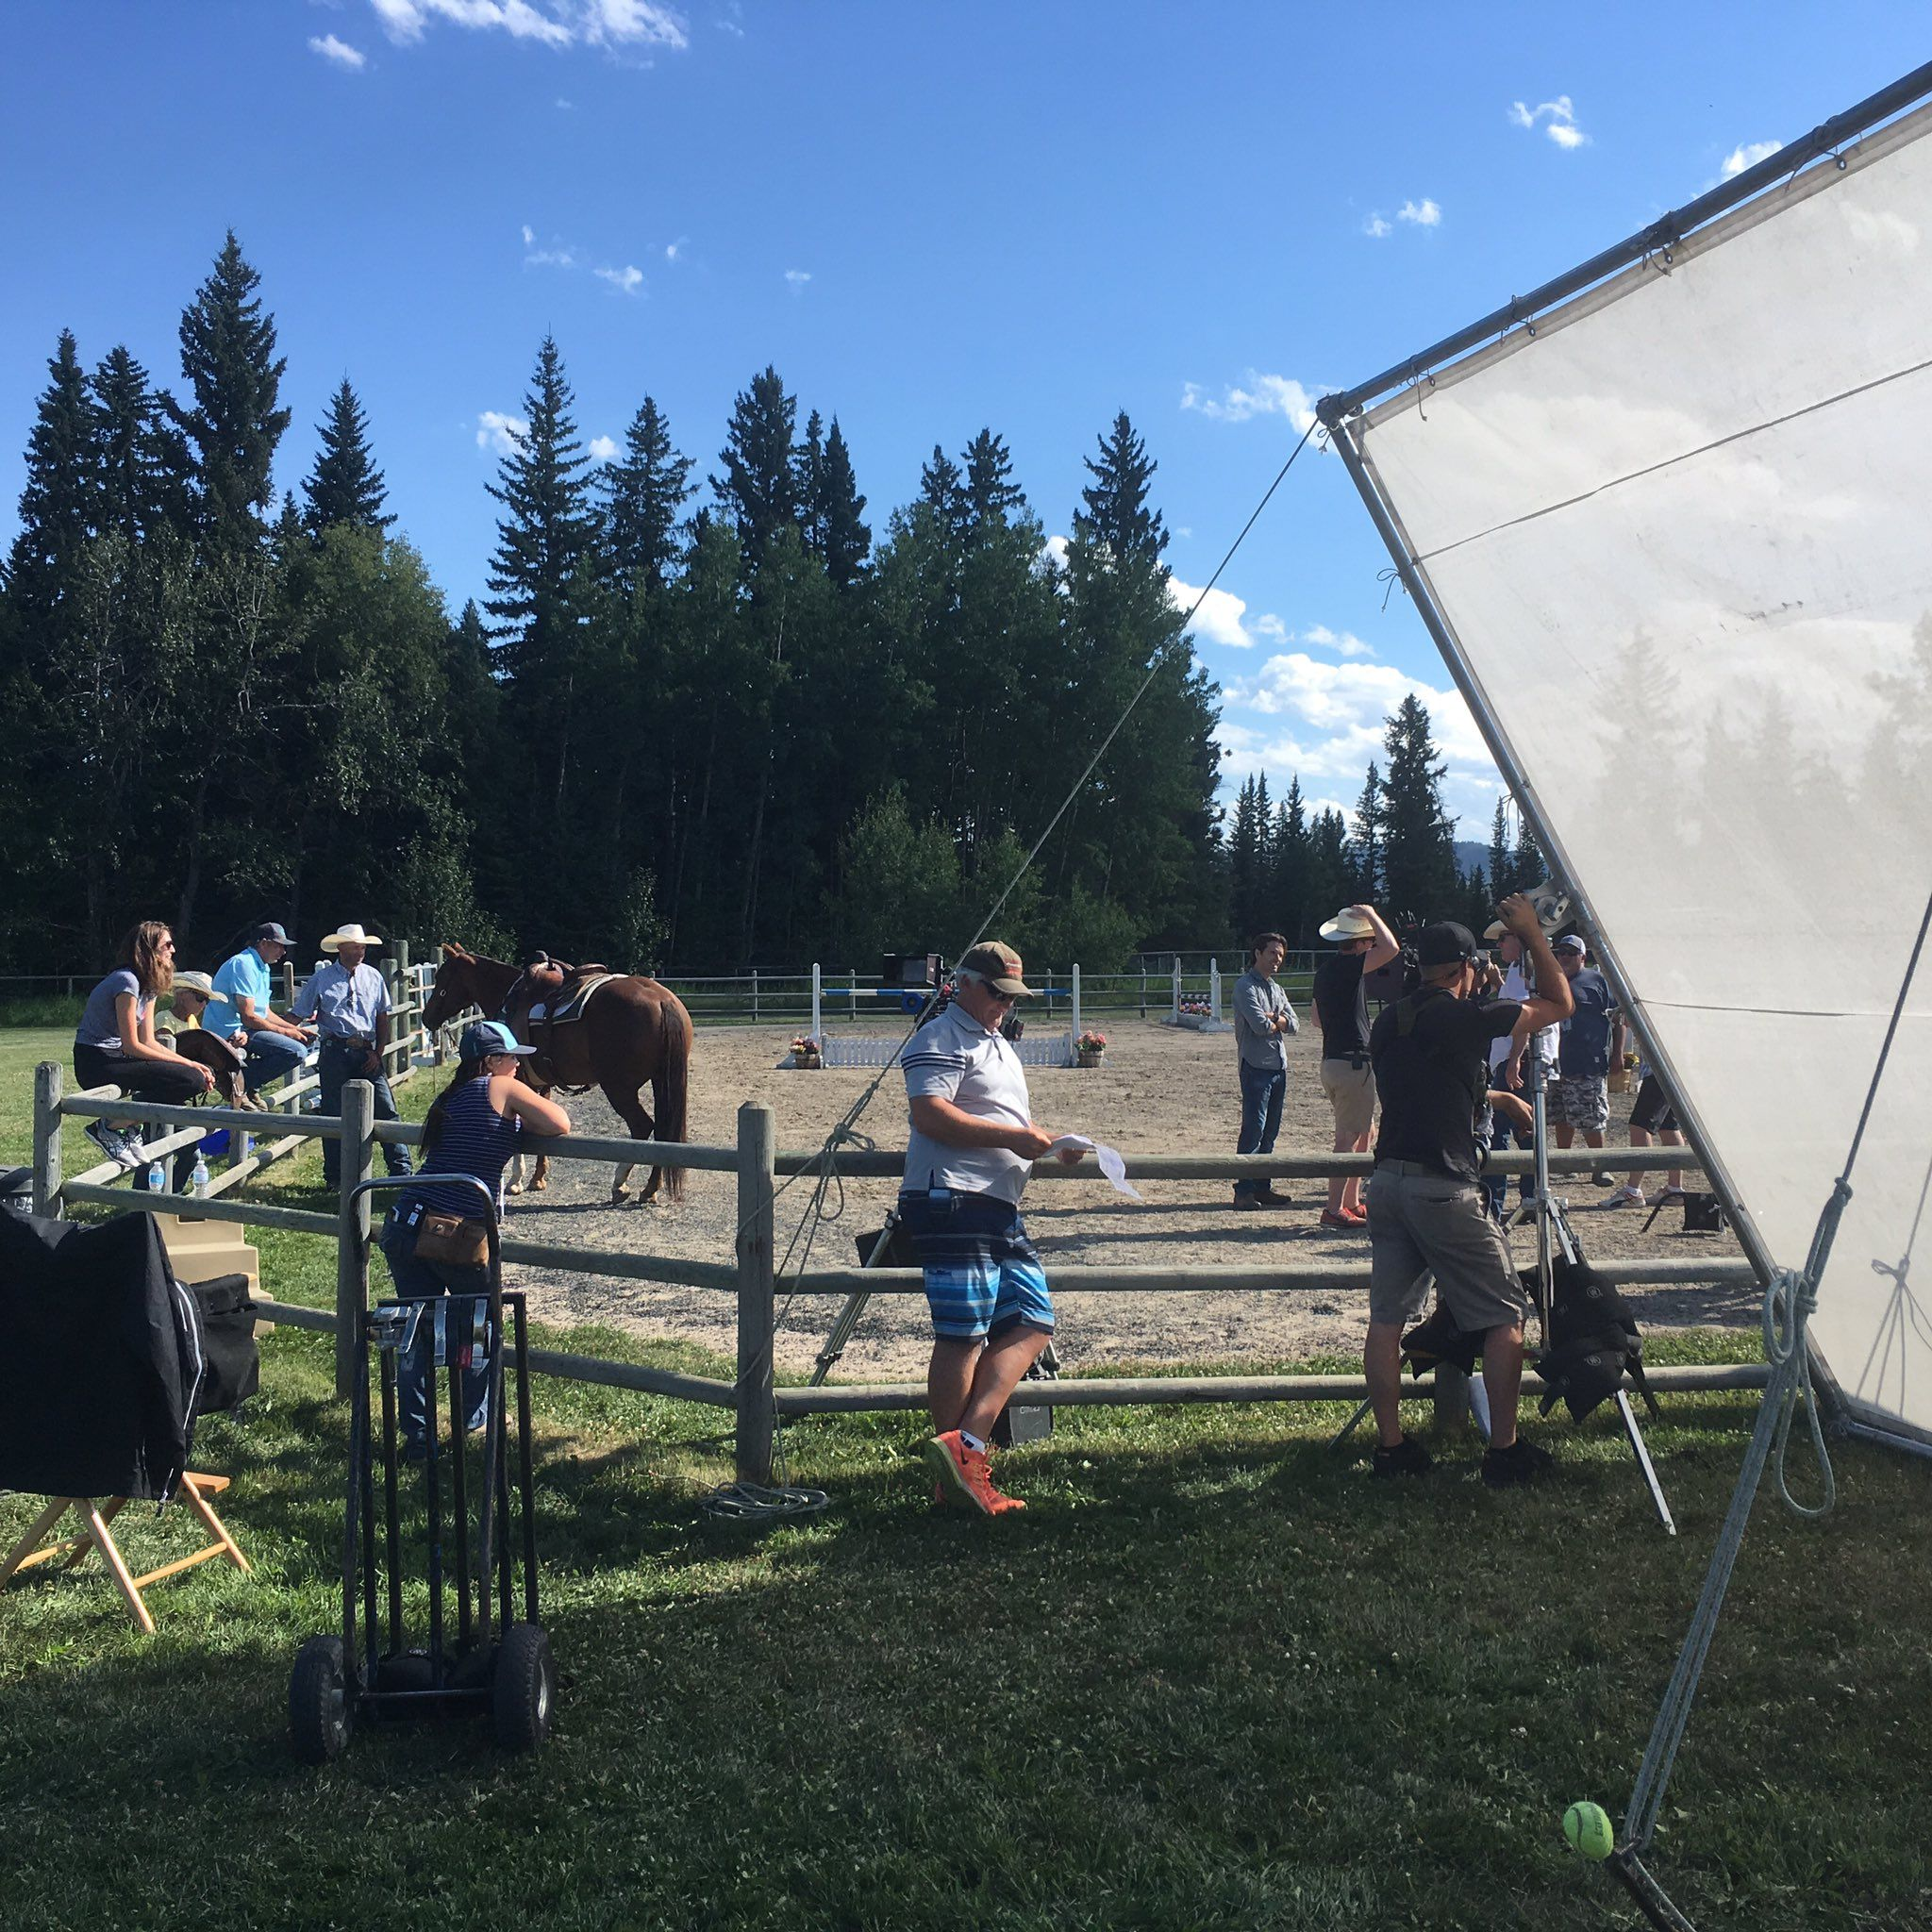 "Heartland on Twitter: ""As shadows grow longer as evening approaches, filming cintinues, and it's pretty laid back. 1 last scene to go. 🙂 #HLinProd https://t.co/FPCLzhqRt5"""